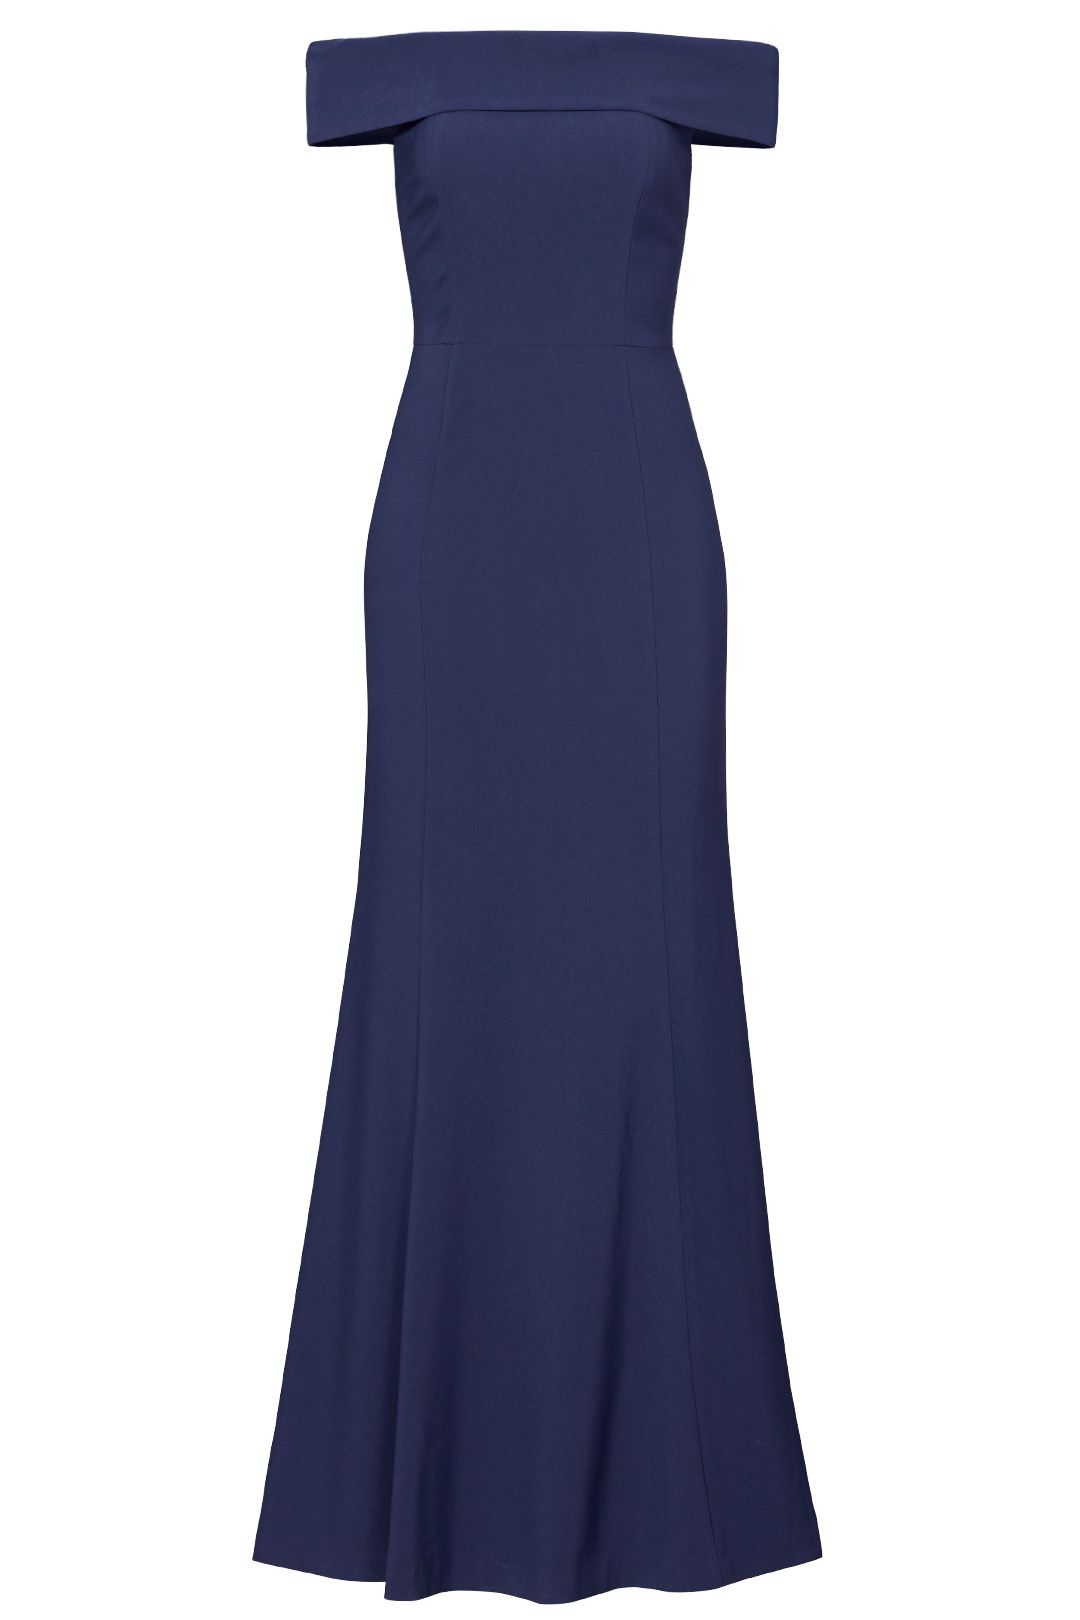 Navy off shoulder gown currently obsessing pinterest shelli